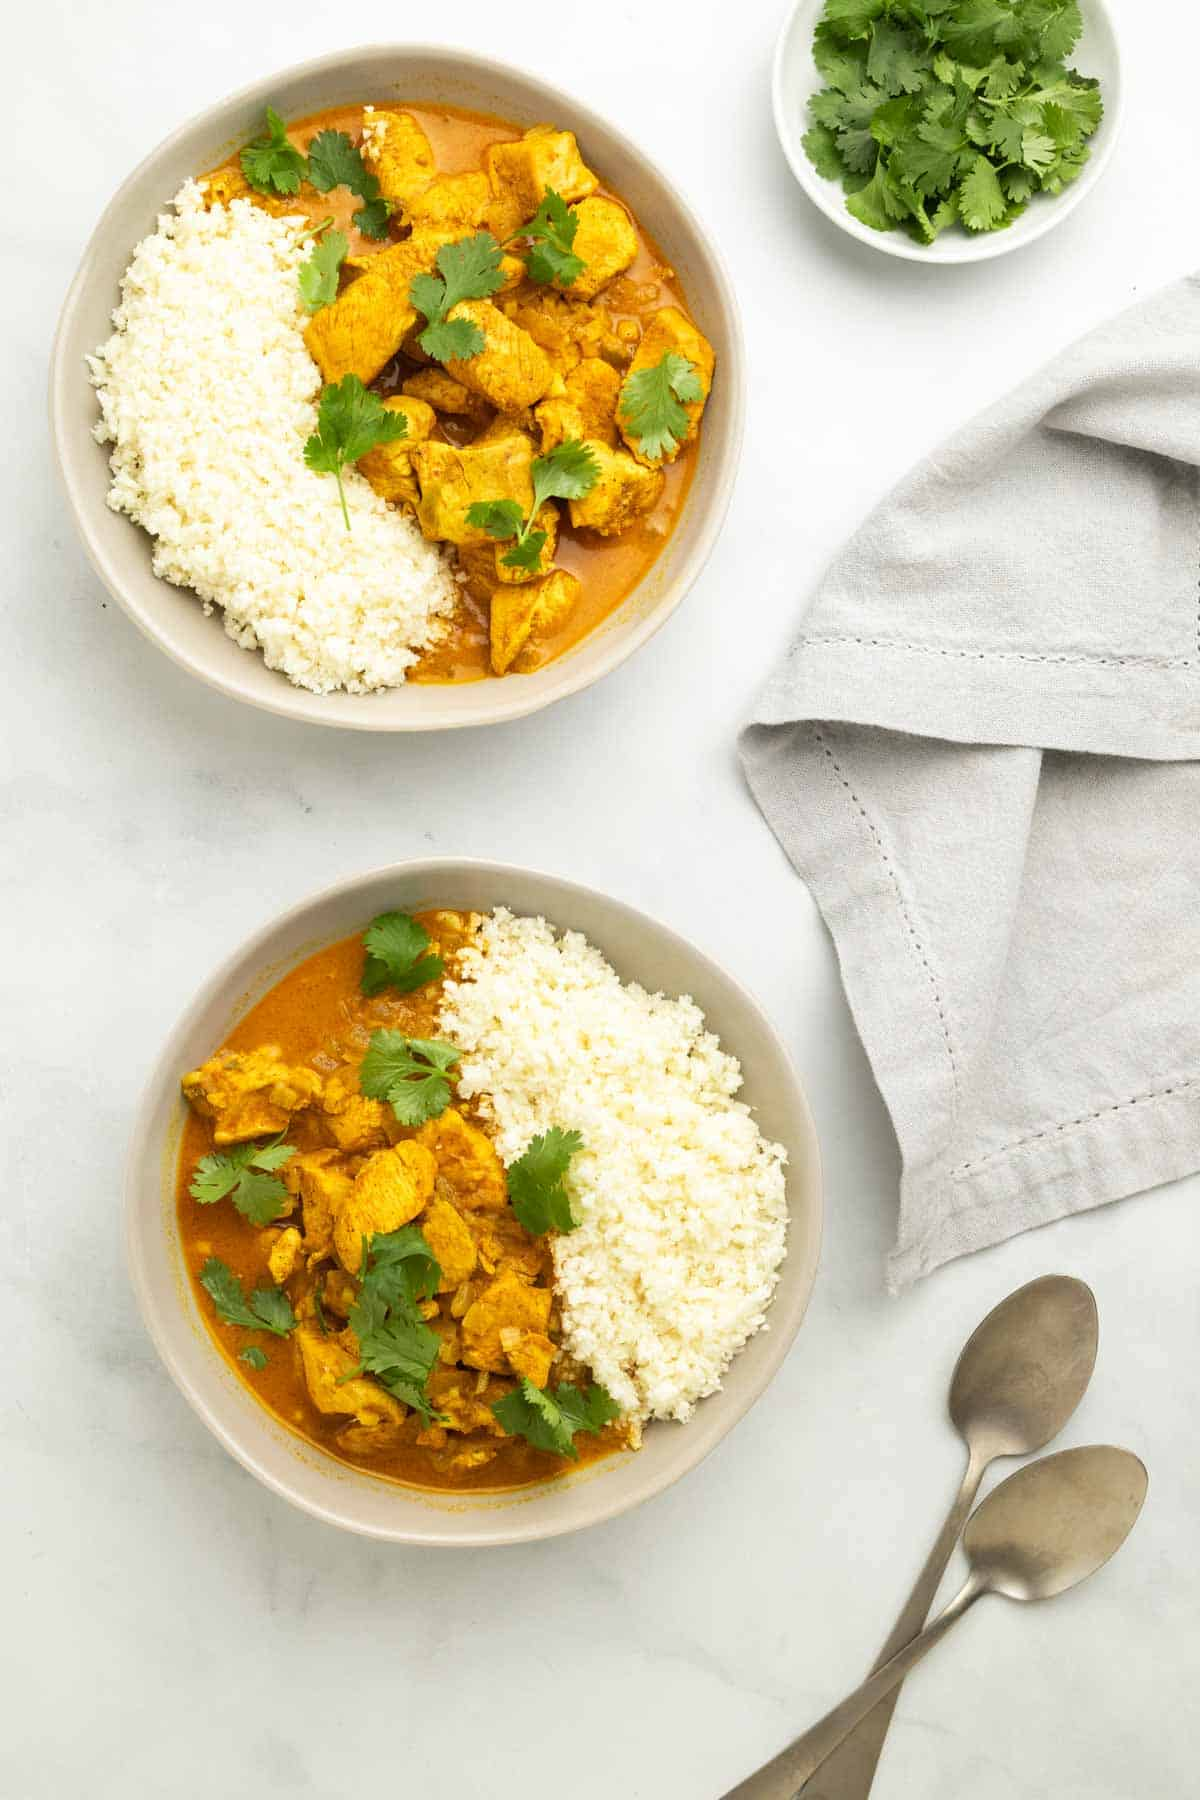 Two bowls of chicken curry served with cauliflower rice and garnished with cilantro